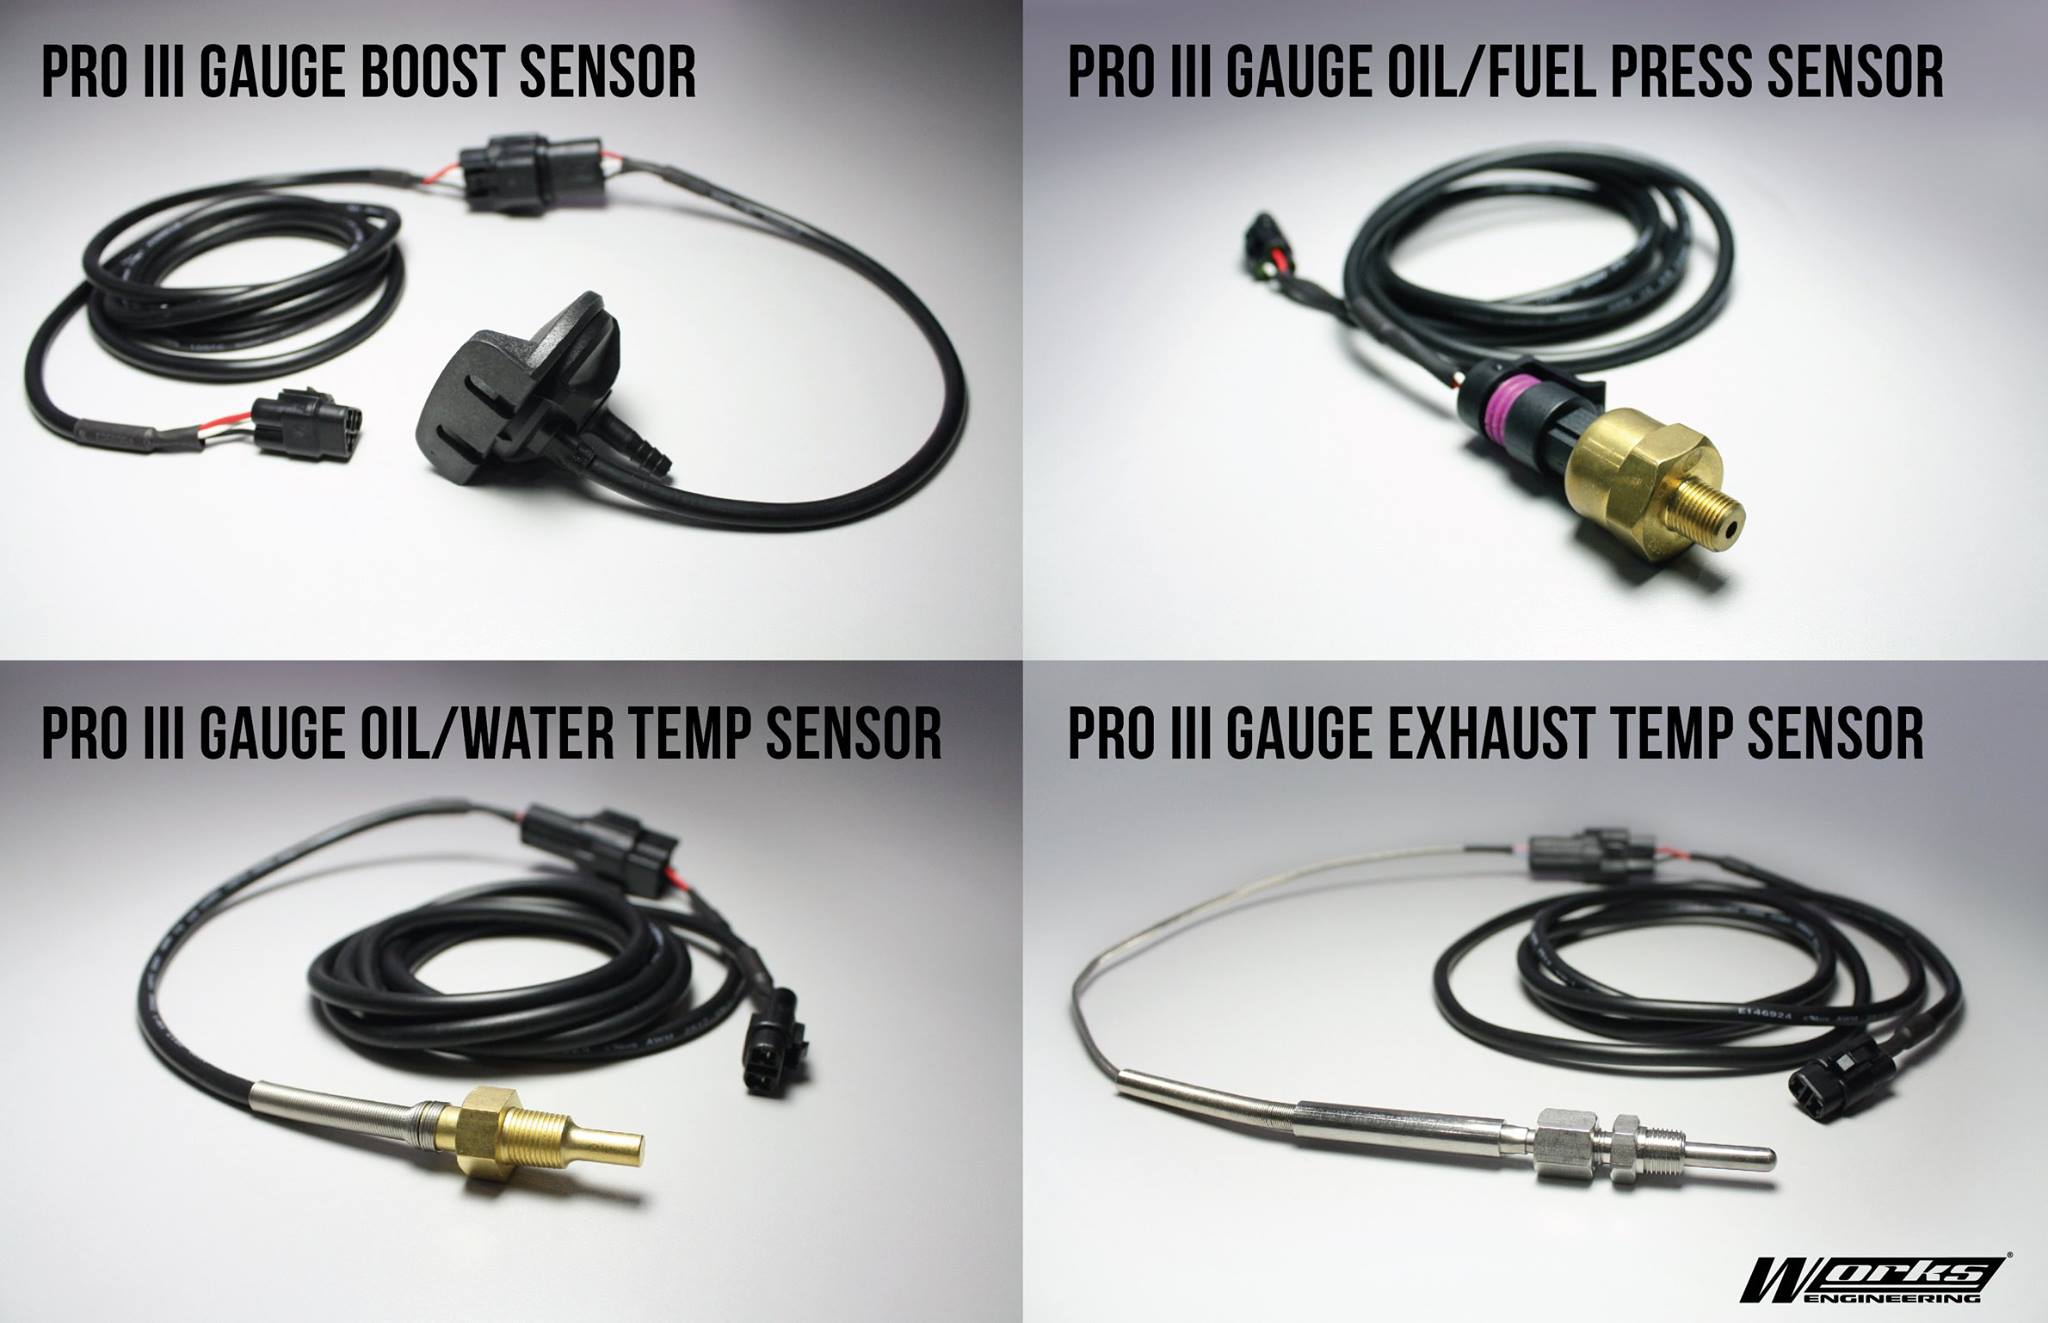 works engineering fuel pressure sensor wire harness for pro iii